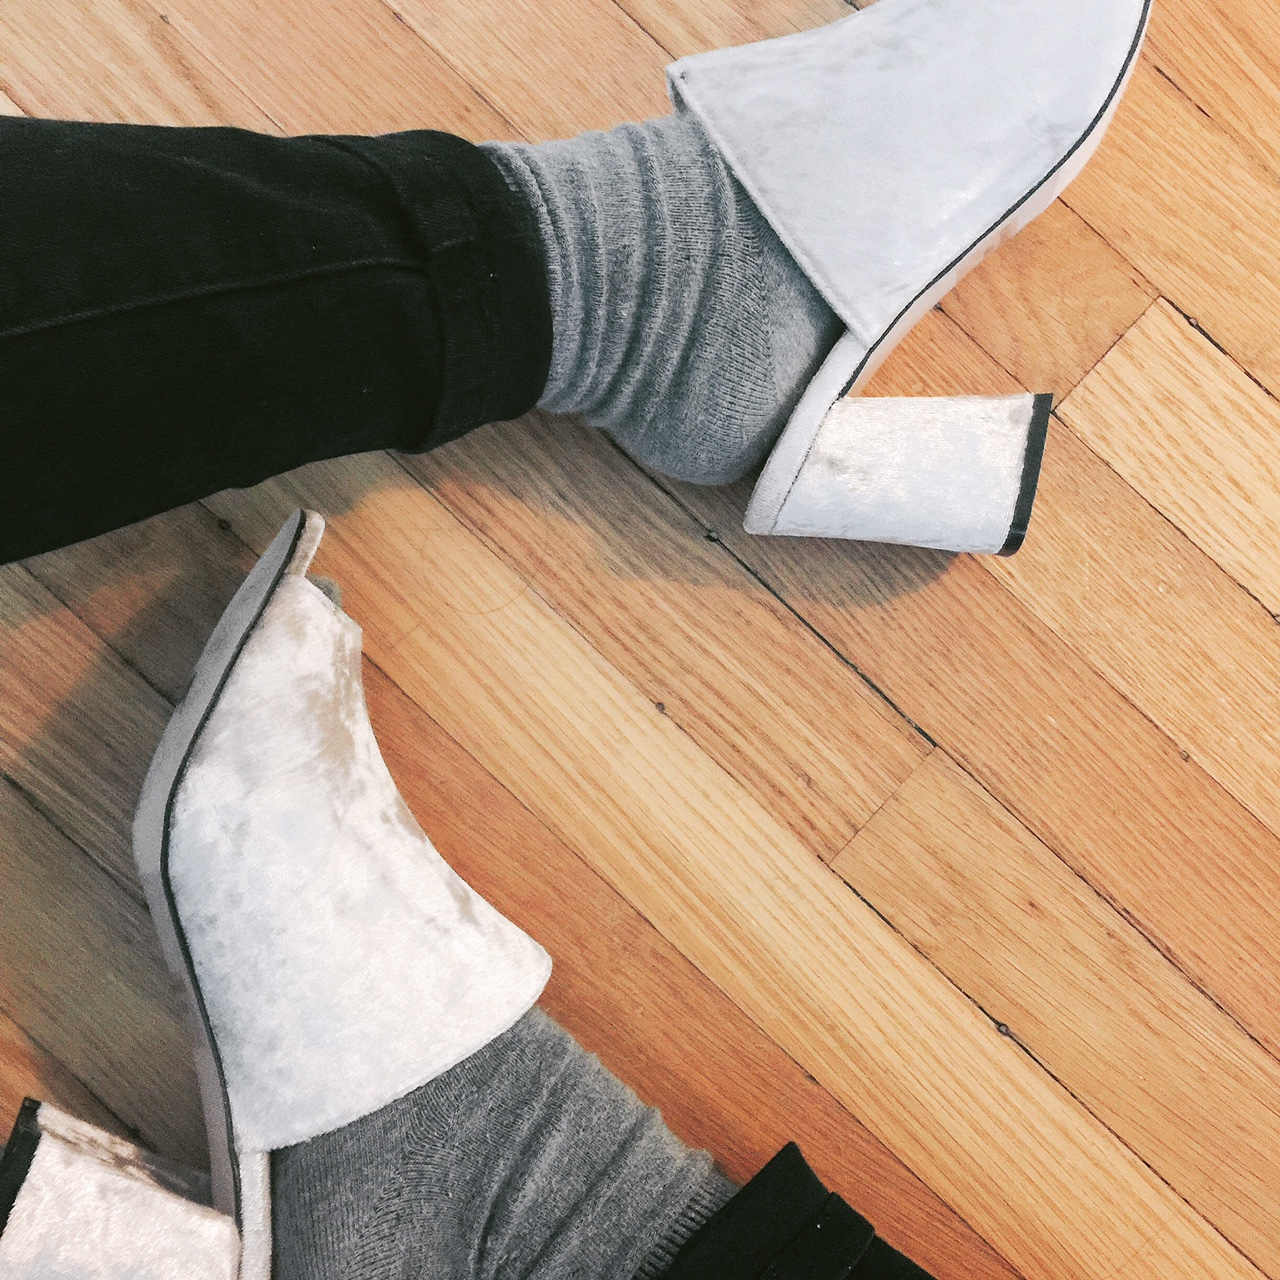 portland style blogger, velvet, mules, amazon find, fashion blogger, portland fashion blogger, minimal style, heels with socks